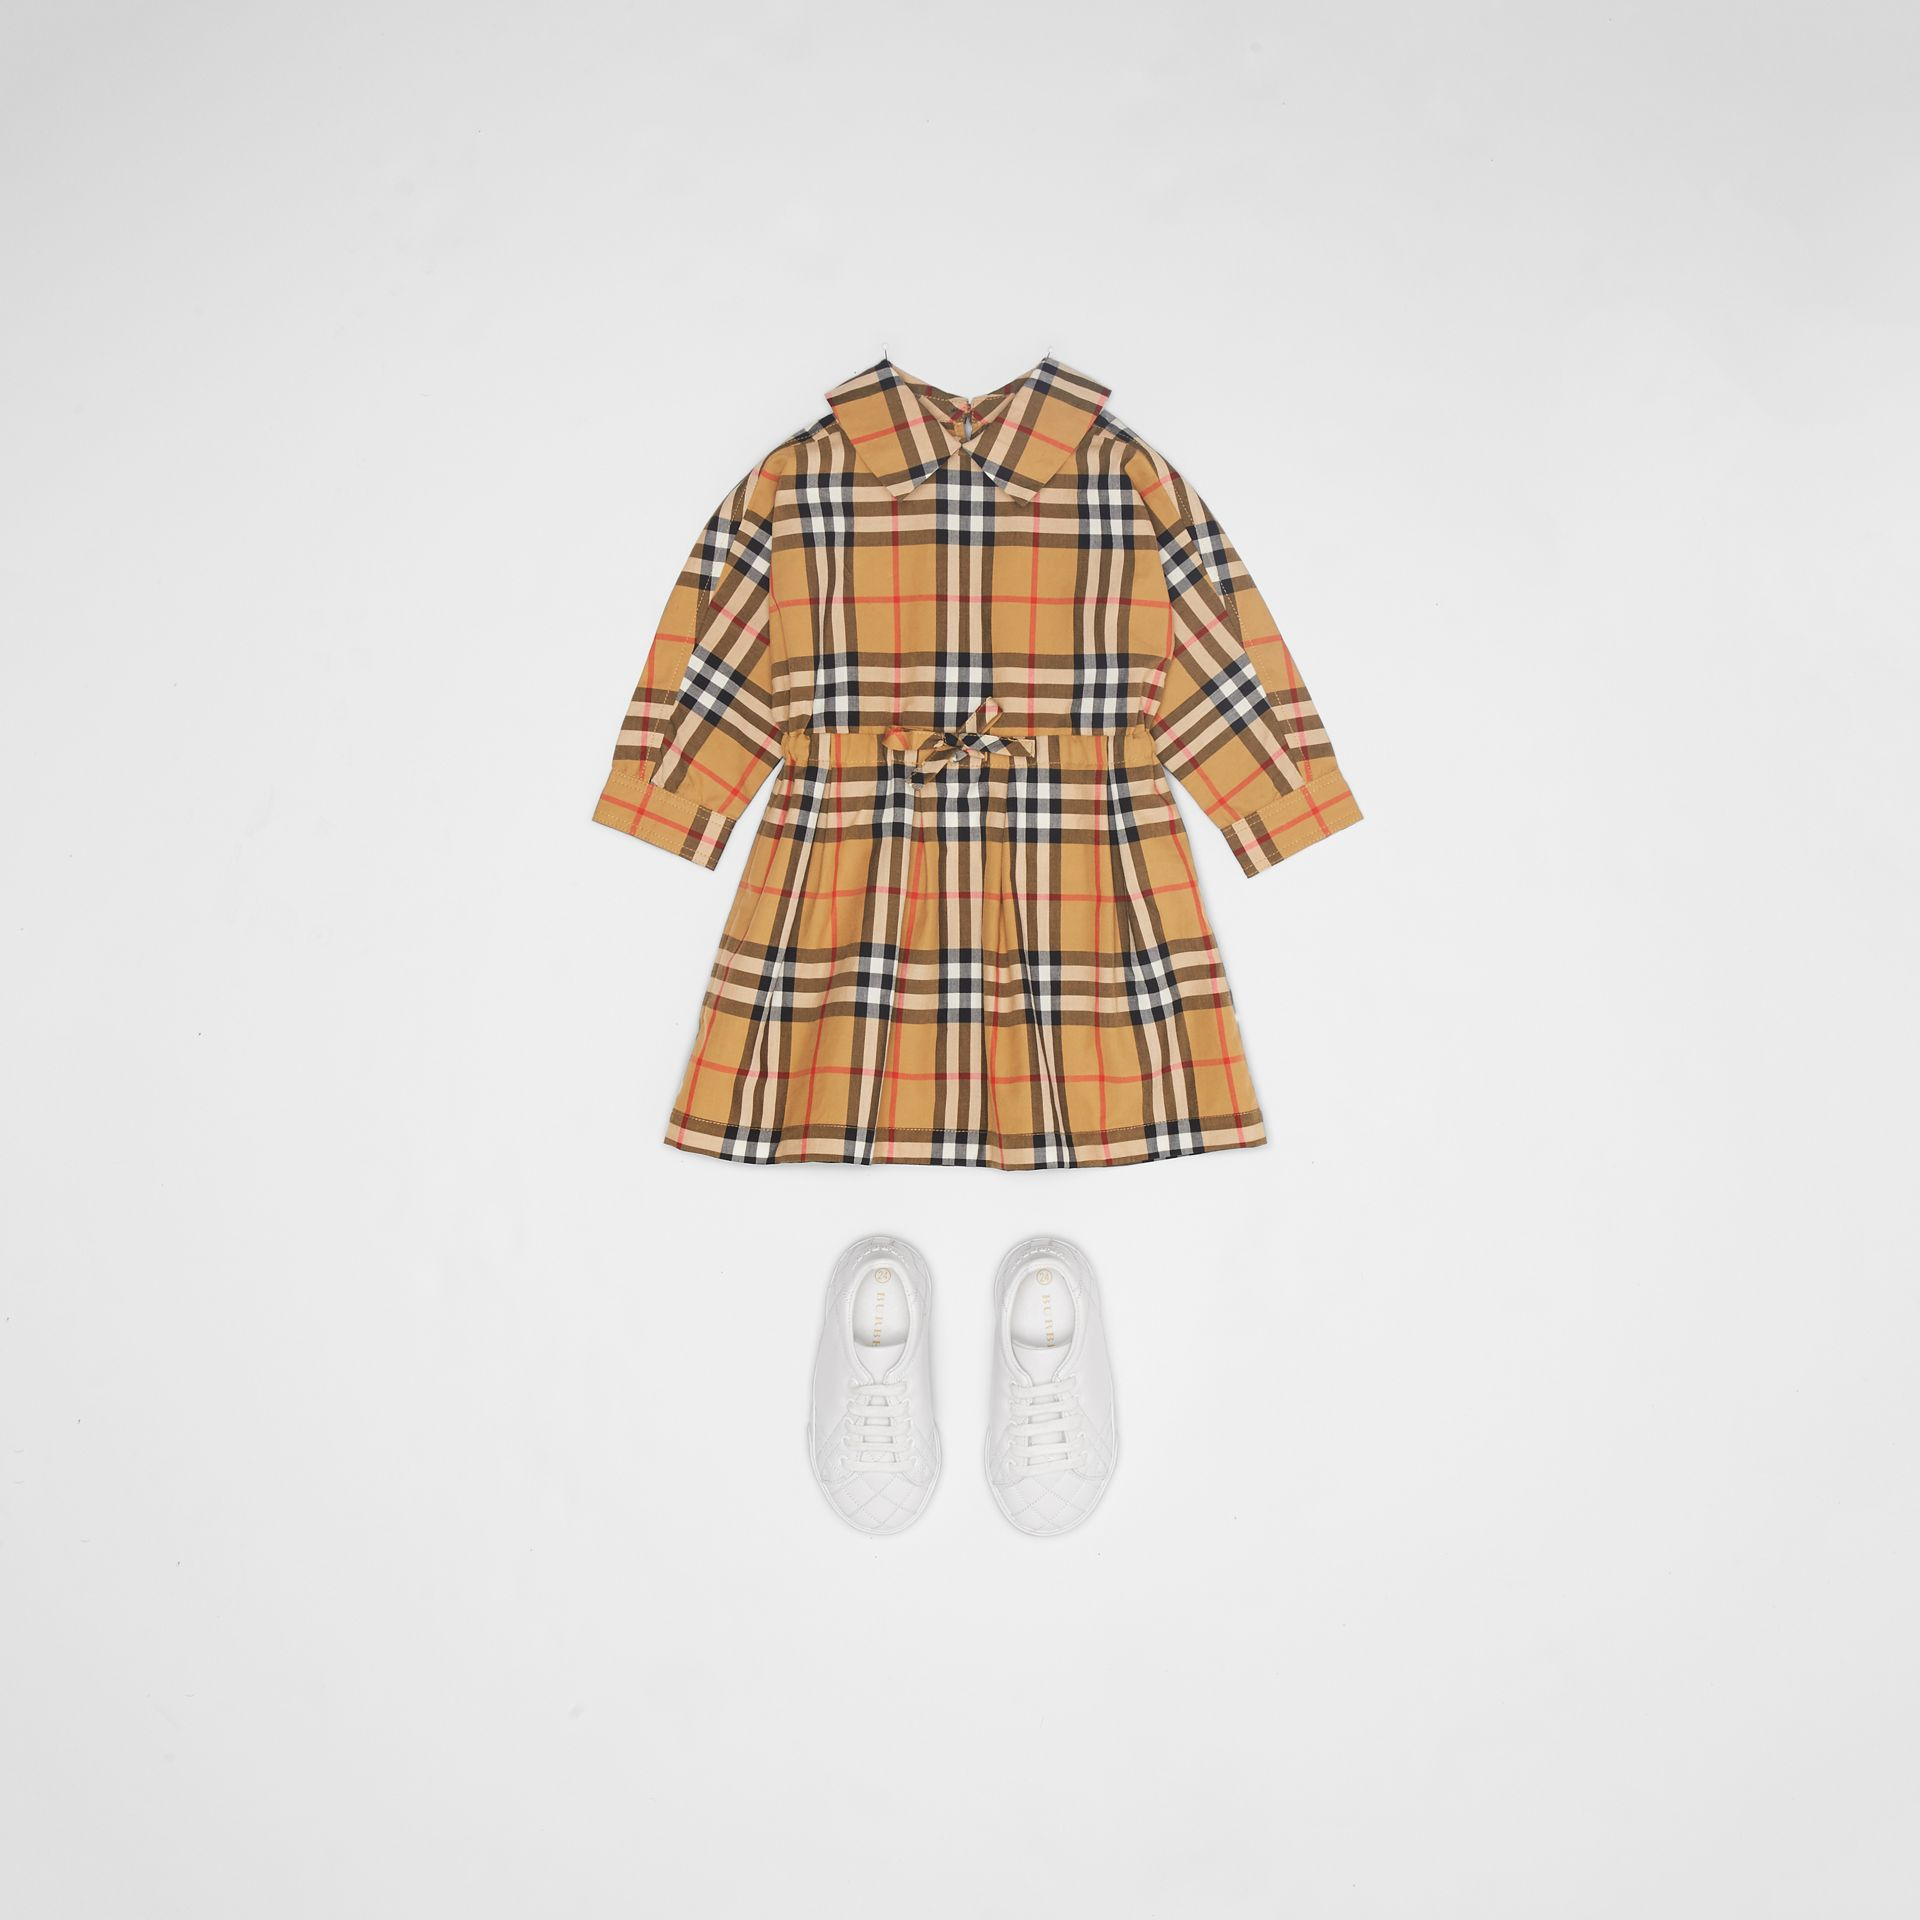 Robe à cordon de serrage en coton à motif Vintage check (Jaune Antique) - Enfant | Burberry - photo de la galerie 2